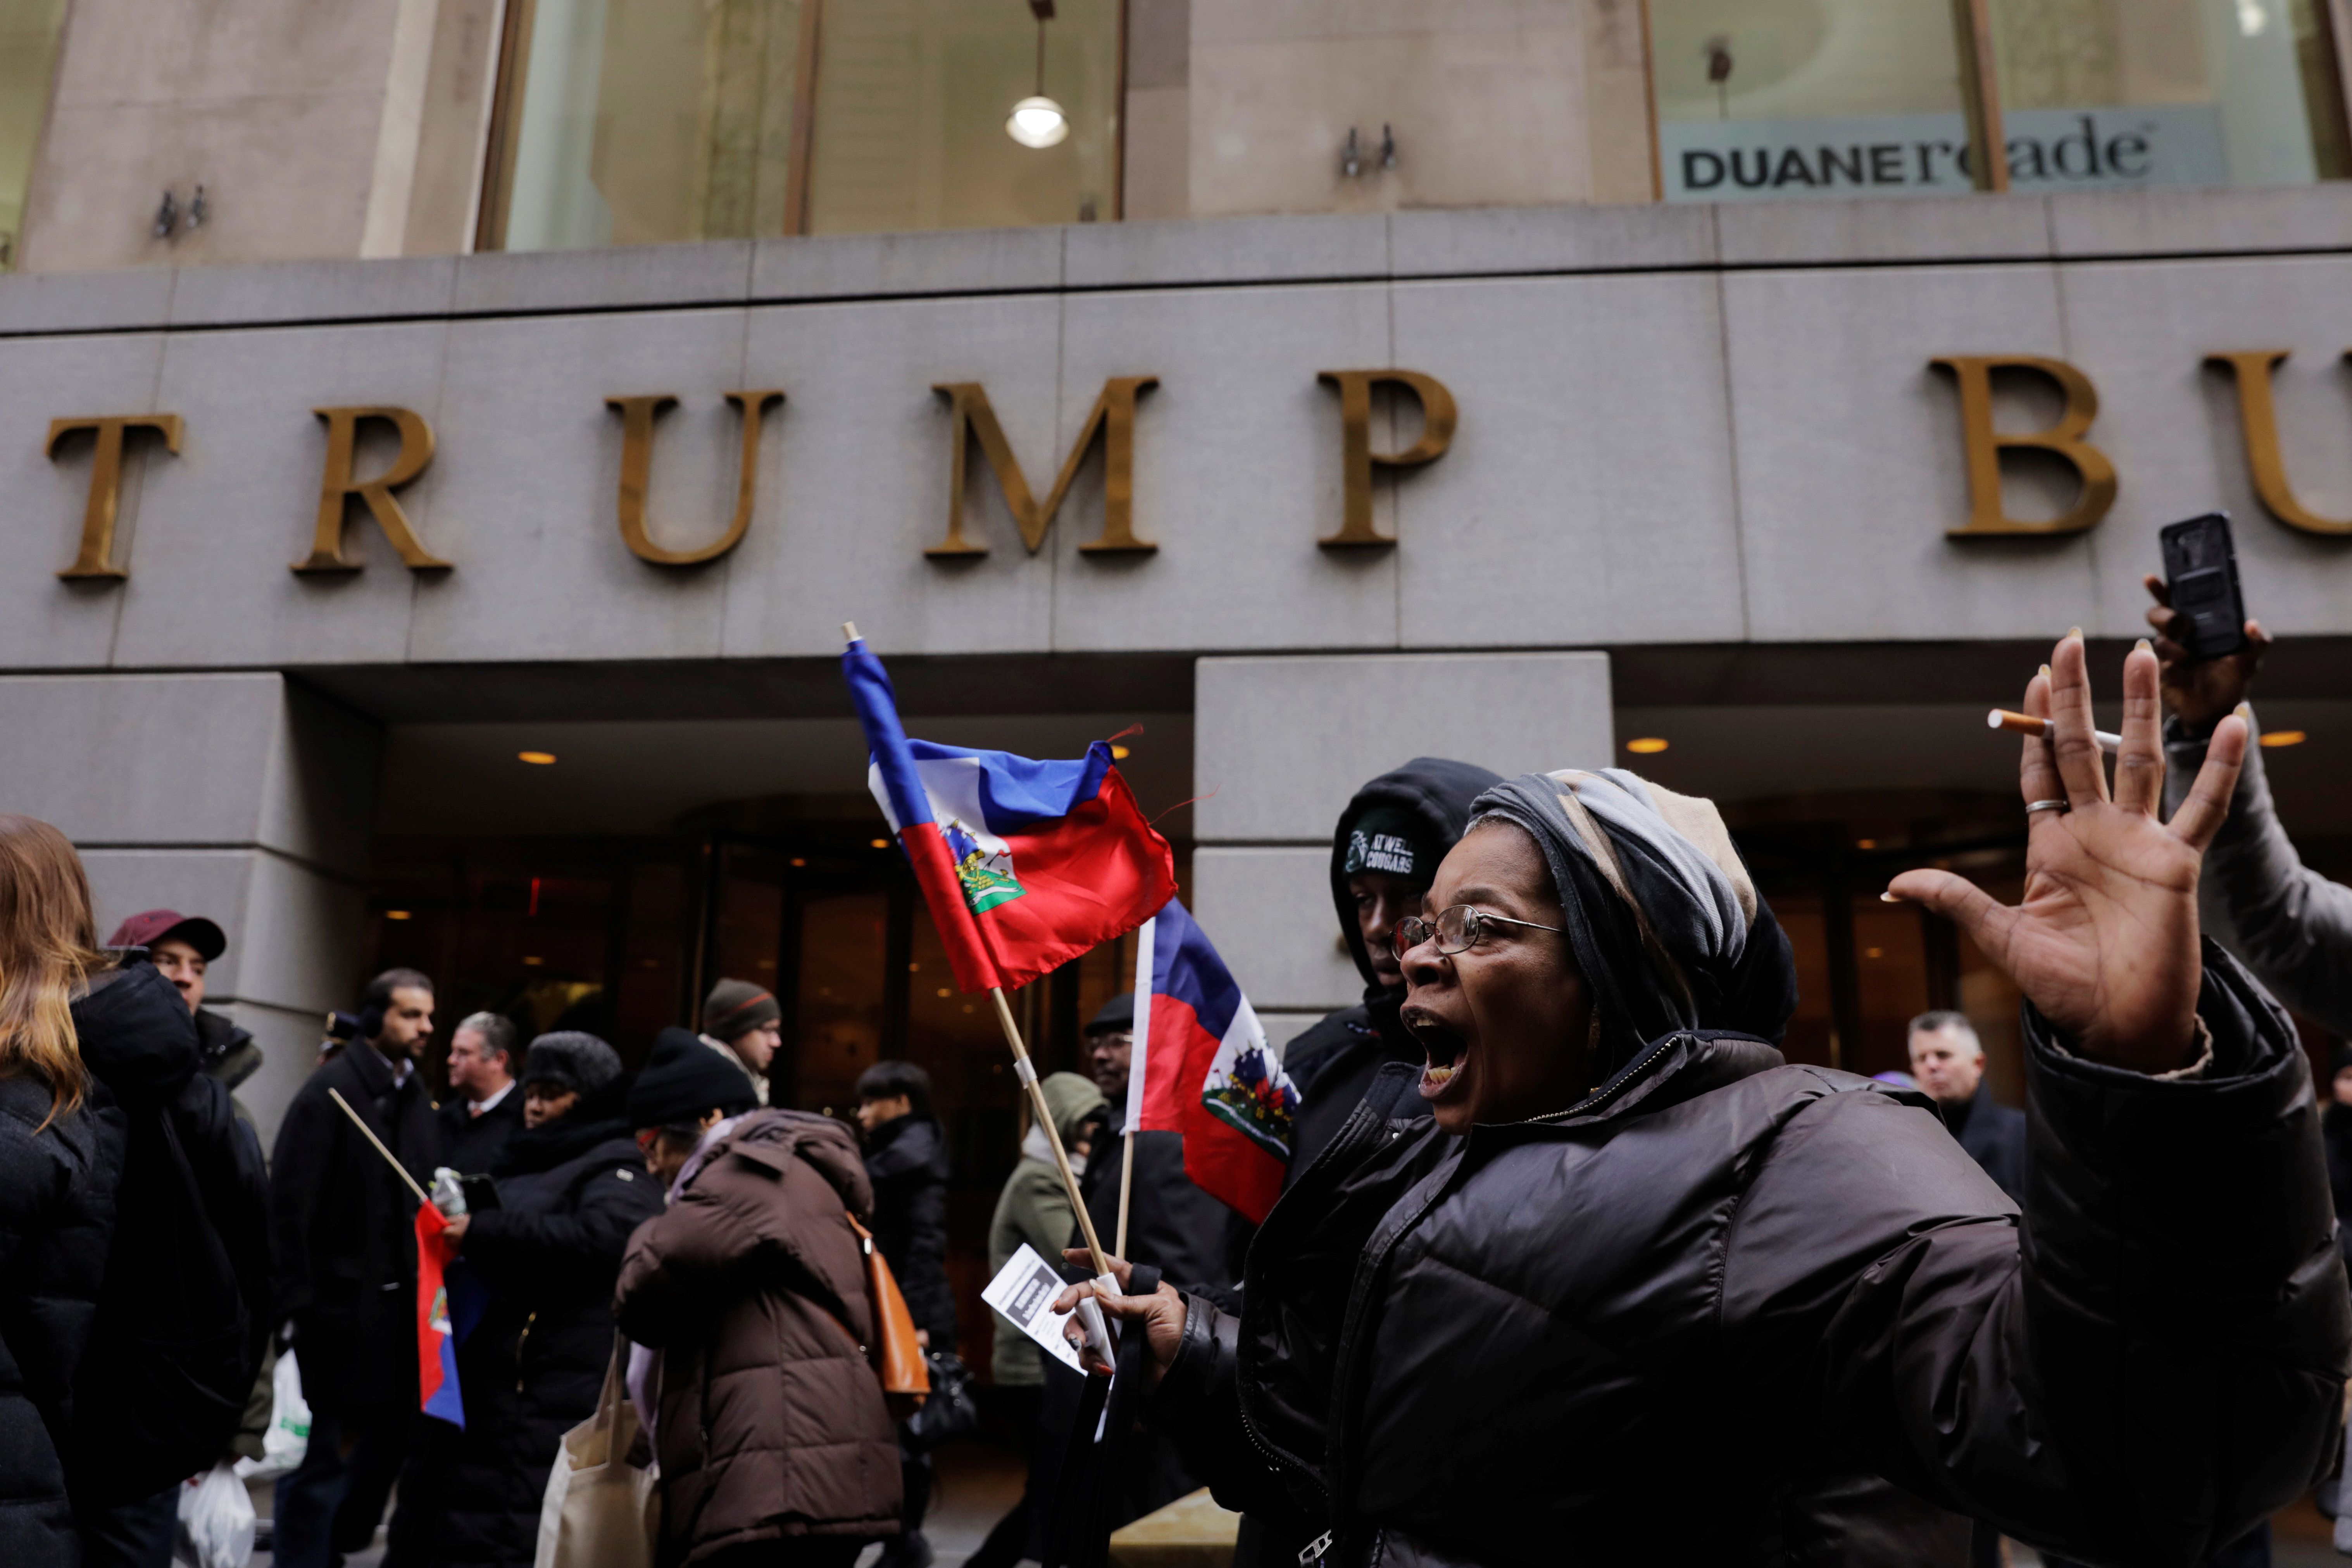 Haitian Americans demonstrated outside of Trump Tower after the president reportedly referred to several majority-black natio